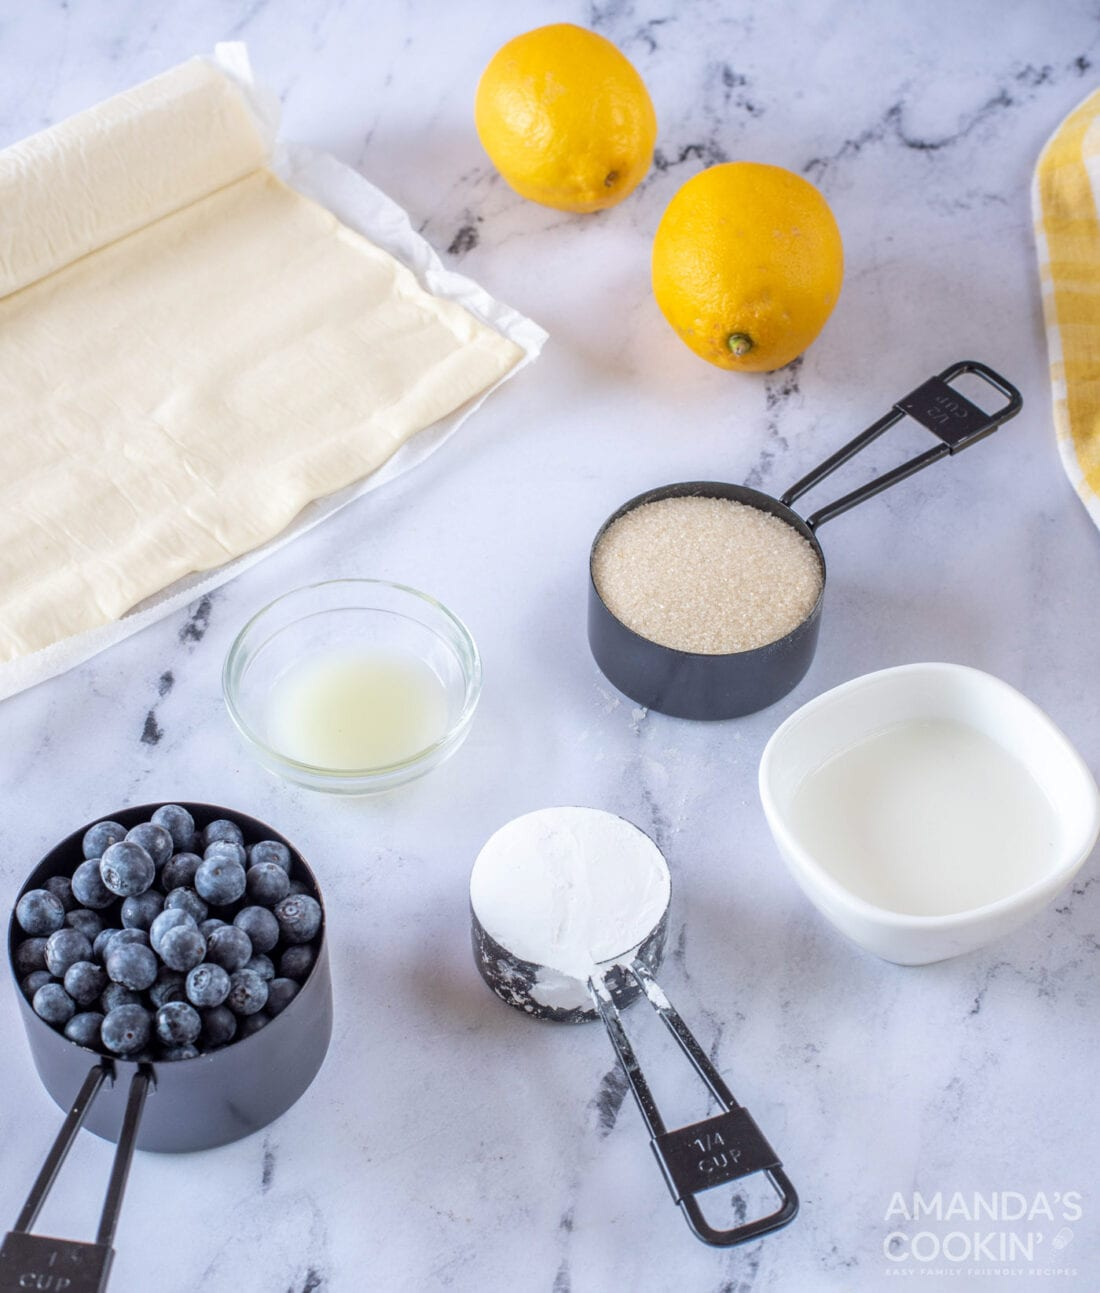 ingredients for making Lemon Blueberry Croissant Hand Pies